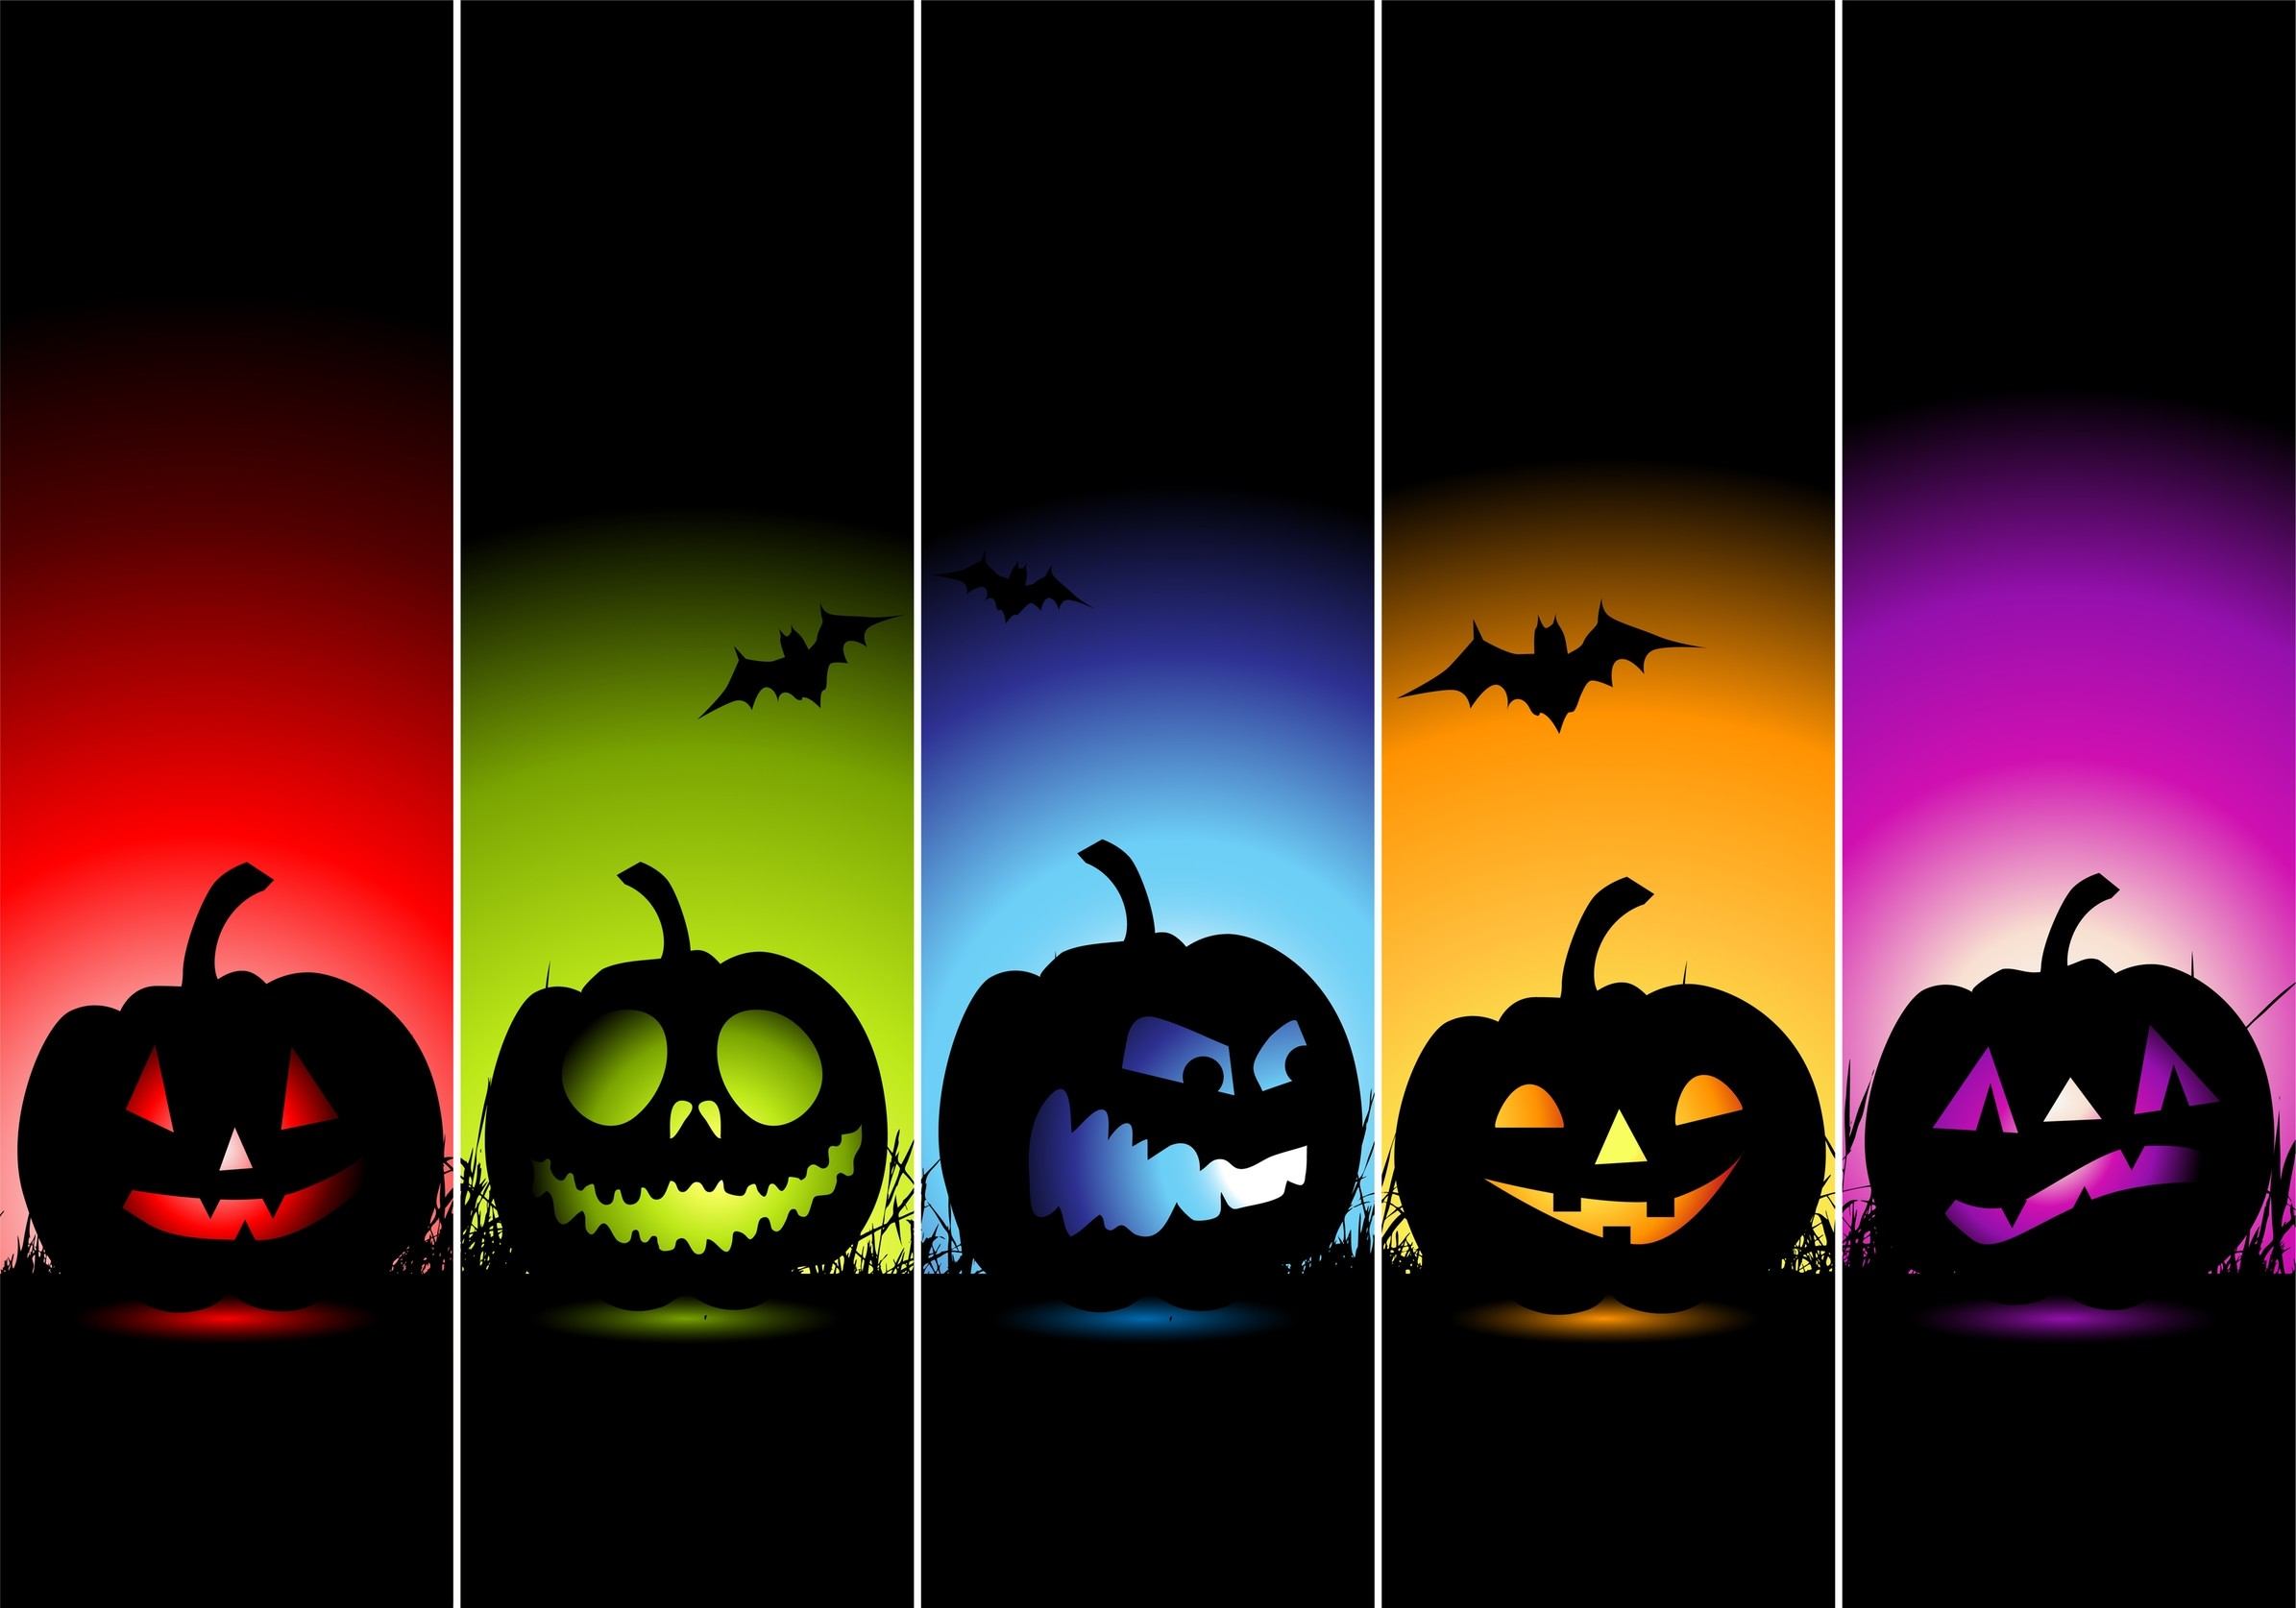 Backgrounds For Halloween Music Backgrounds | www.8backgrounds.com.  Backgrounds For Halloween Music Backgrounds 8backgrounds Com